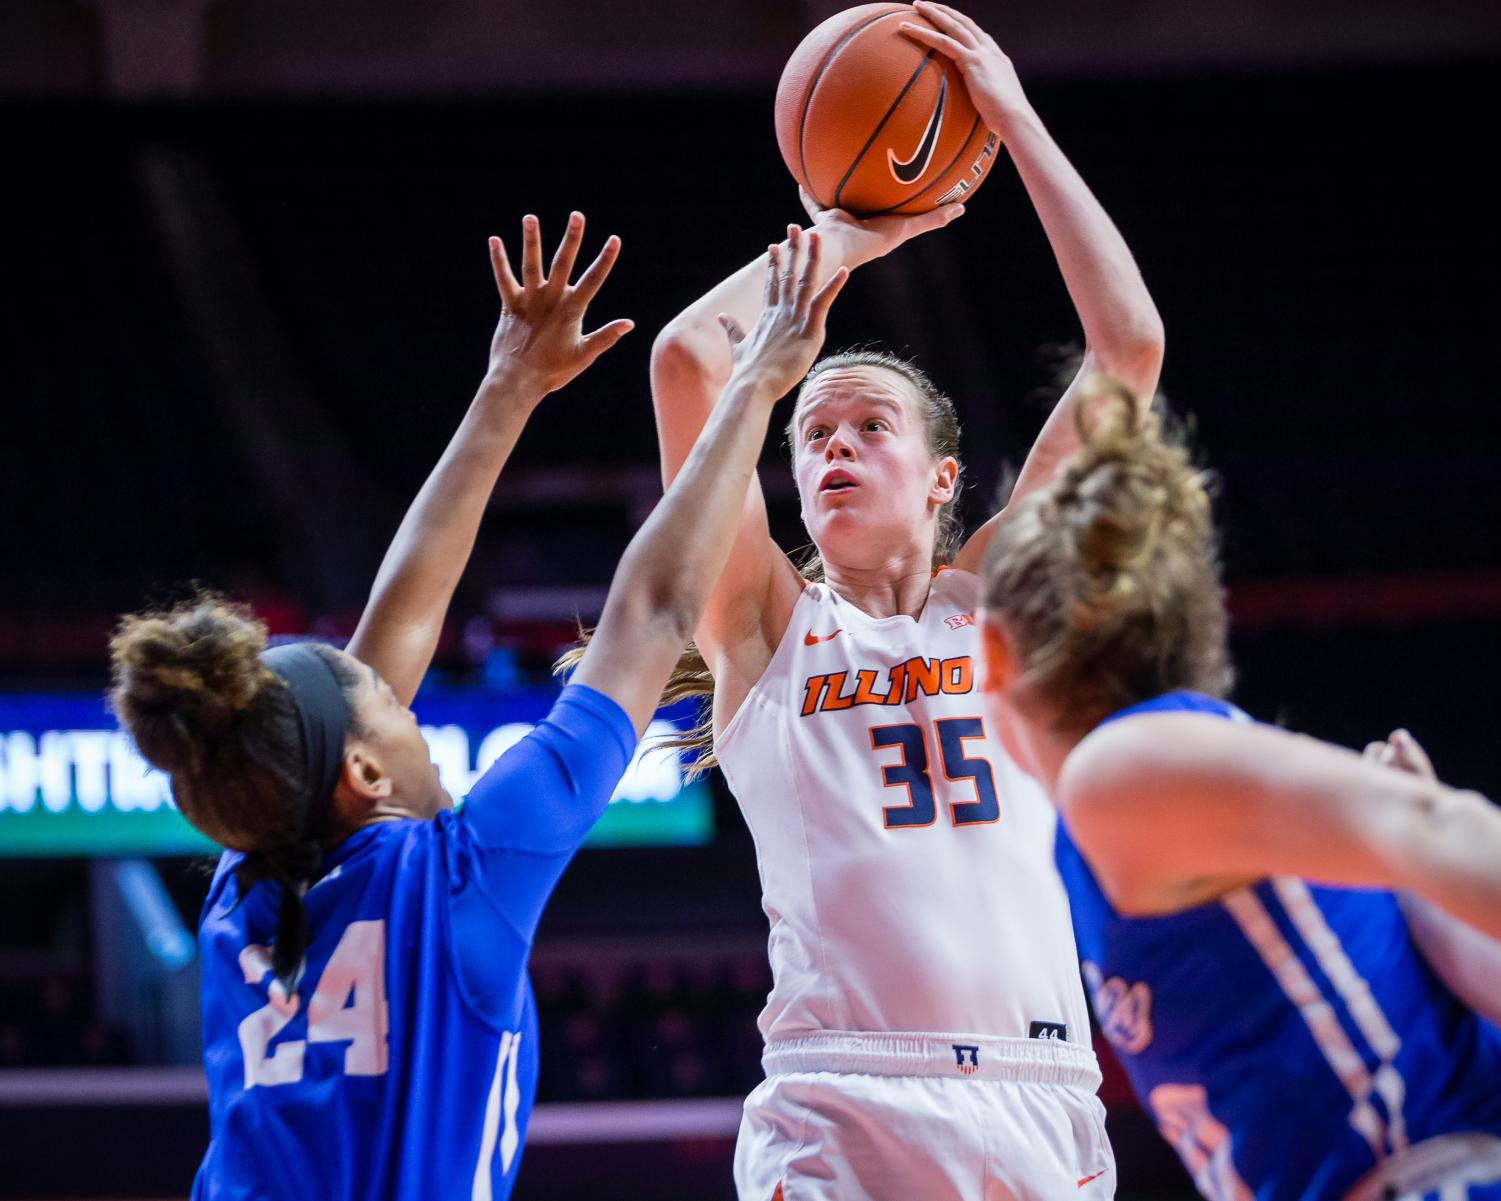 Illinois forward Alex Wittinger rises up to shoot the ball during the game against Indiana State at the State Farm Center on Dec. 5. The Illini won 75-57.